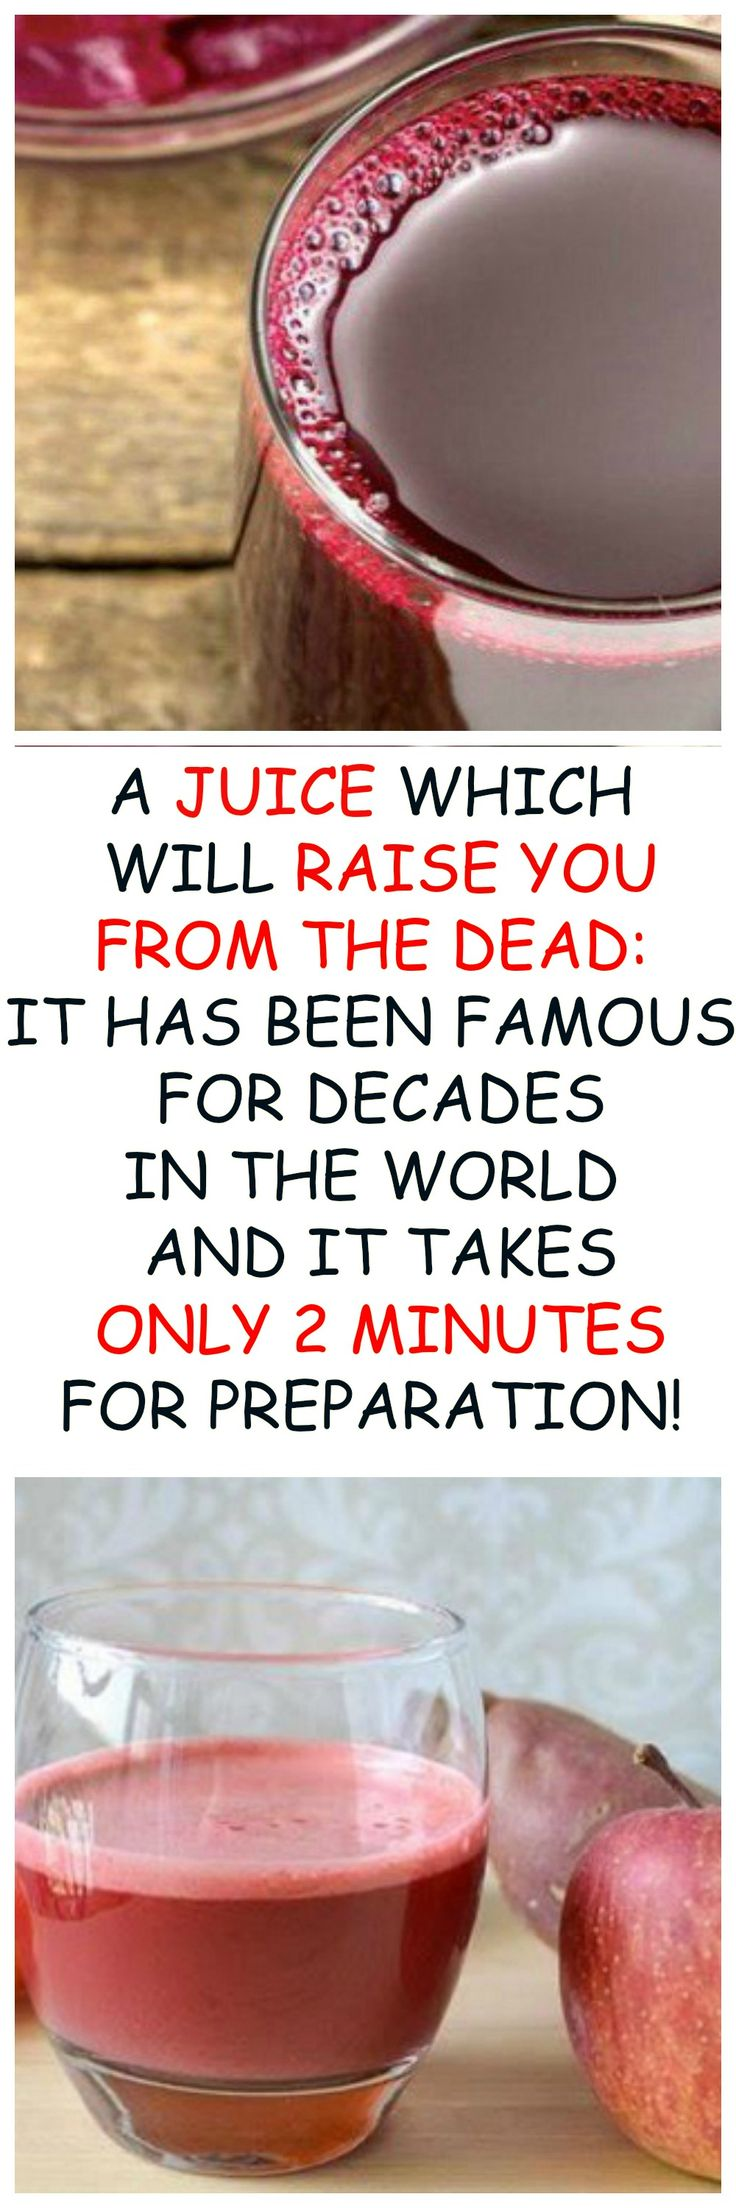 A JUICE WHICH WILL RAISE YOU FROM THE DEAD.IT HAS BEEN FAMOUS FOR DECADES IN THE WORLD AND IT TAKES ONLY TWO MINUTES FOR PREPARATION..